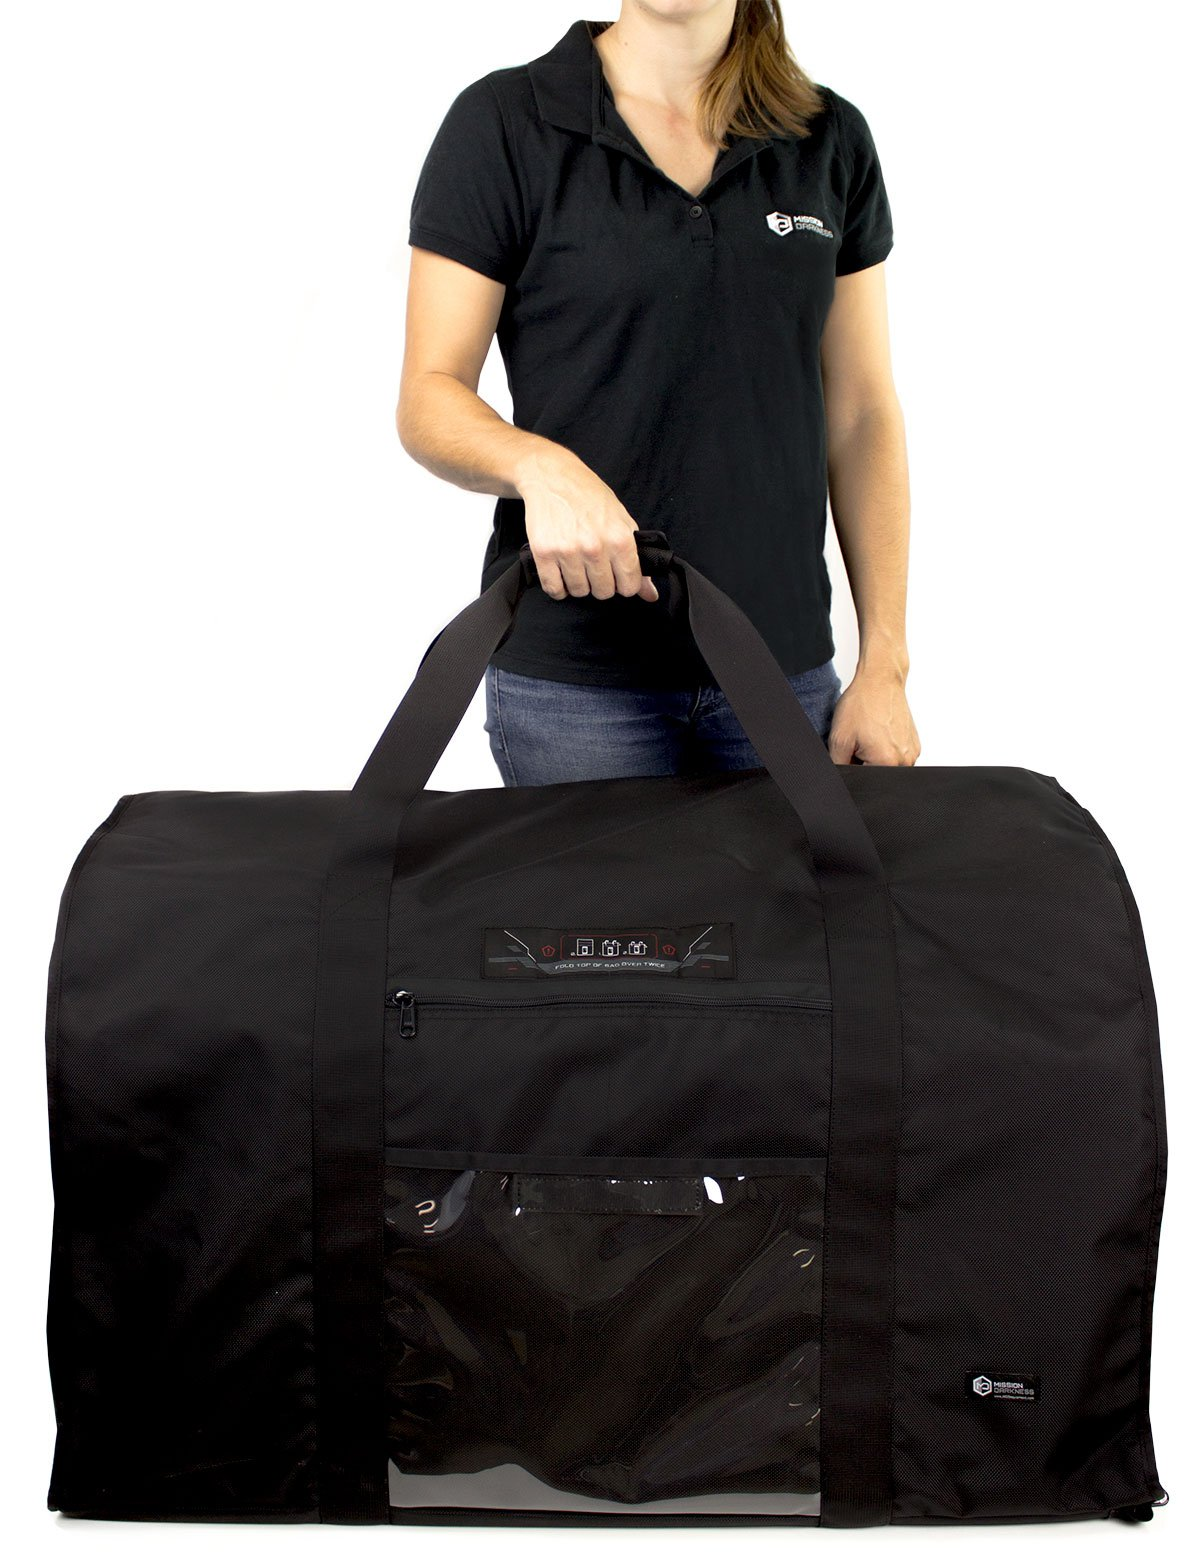 Mission Darkness Revelation EMP Shield for Generators and Extra-Large Electronics. Military-Grade Faraday Bag Designed for EMP/CME Protection, Forensic Investigators, preppers, and Personal Security by Mission Darkness (Image #4)